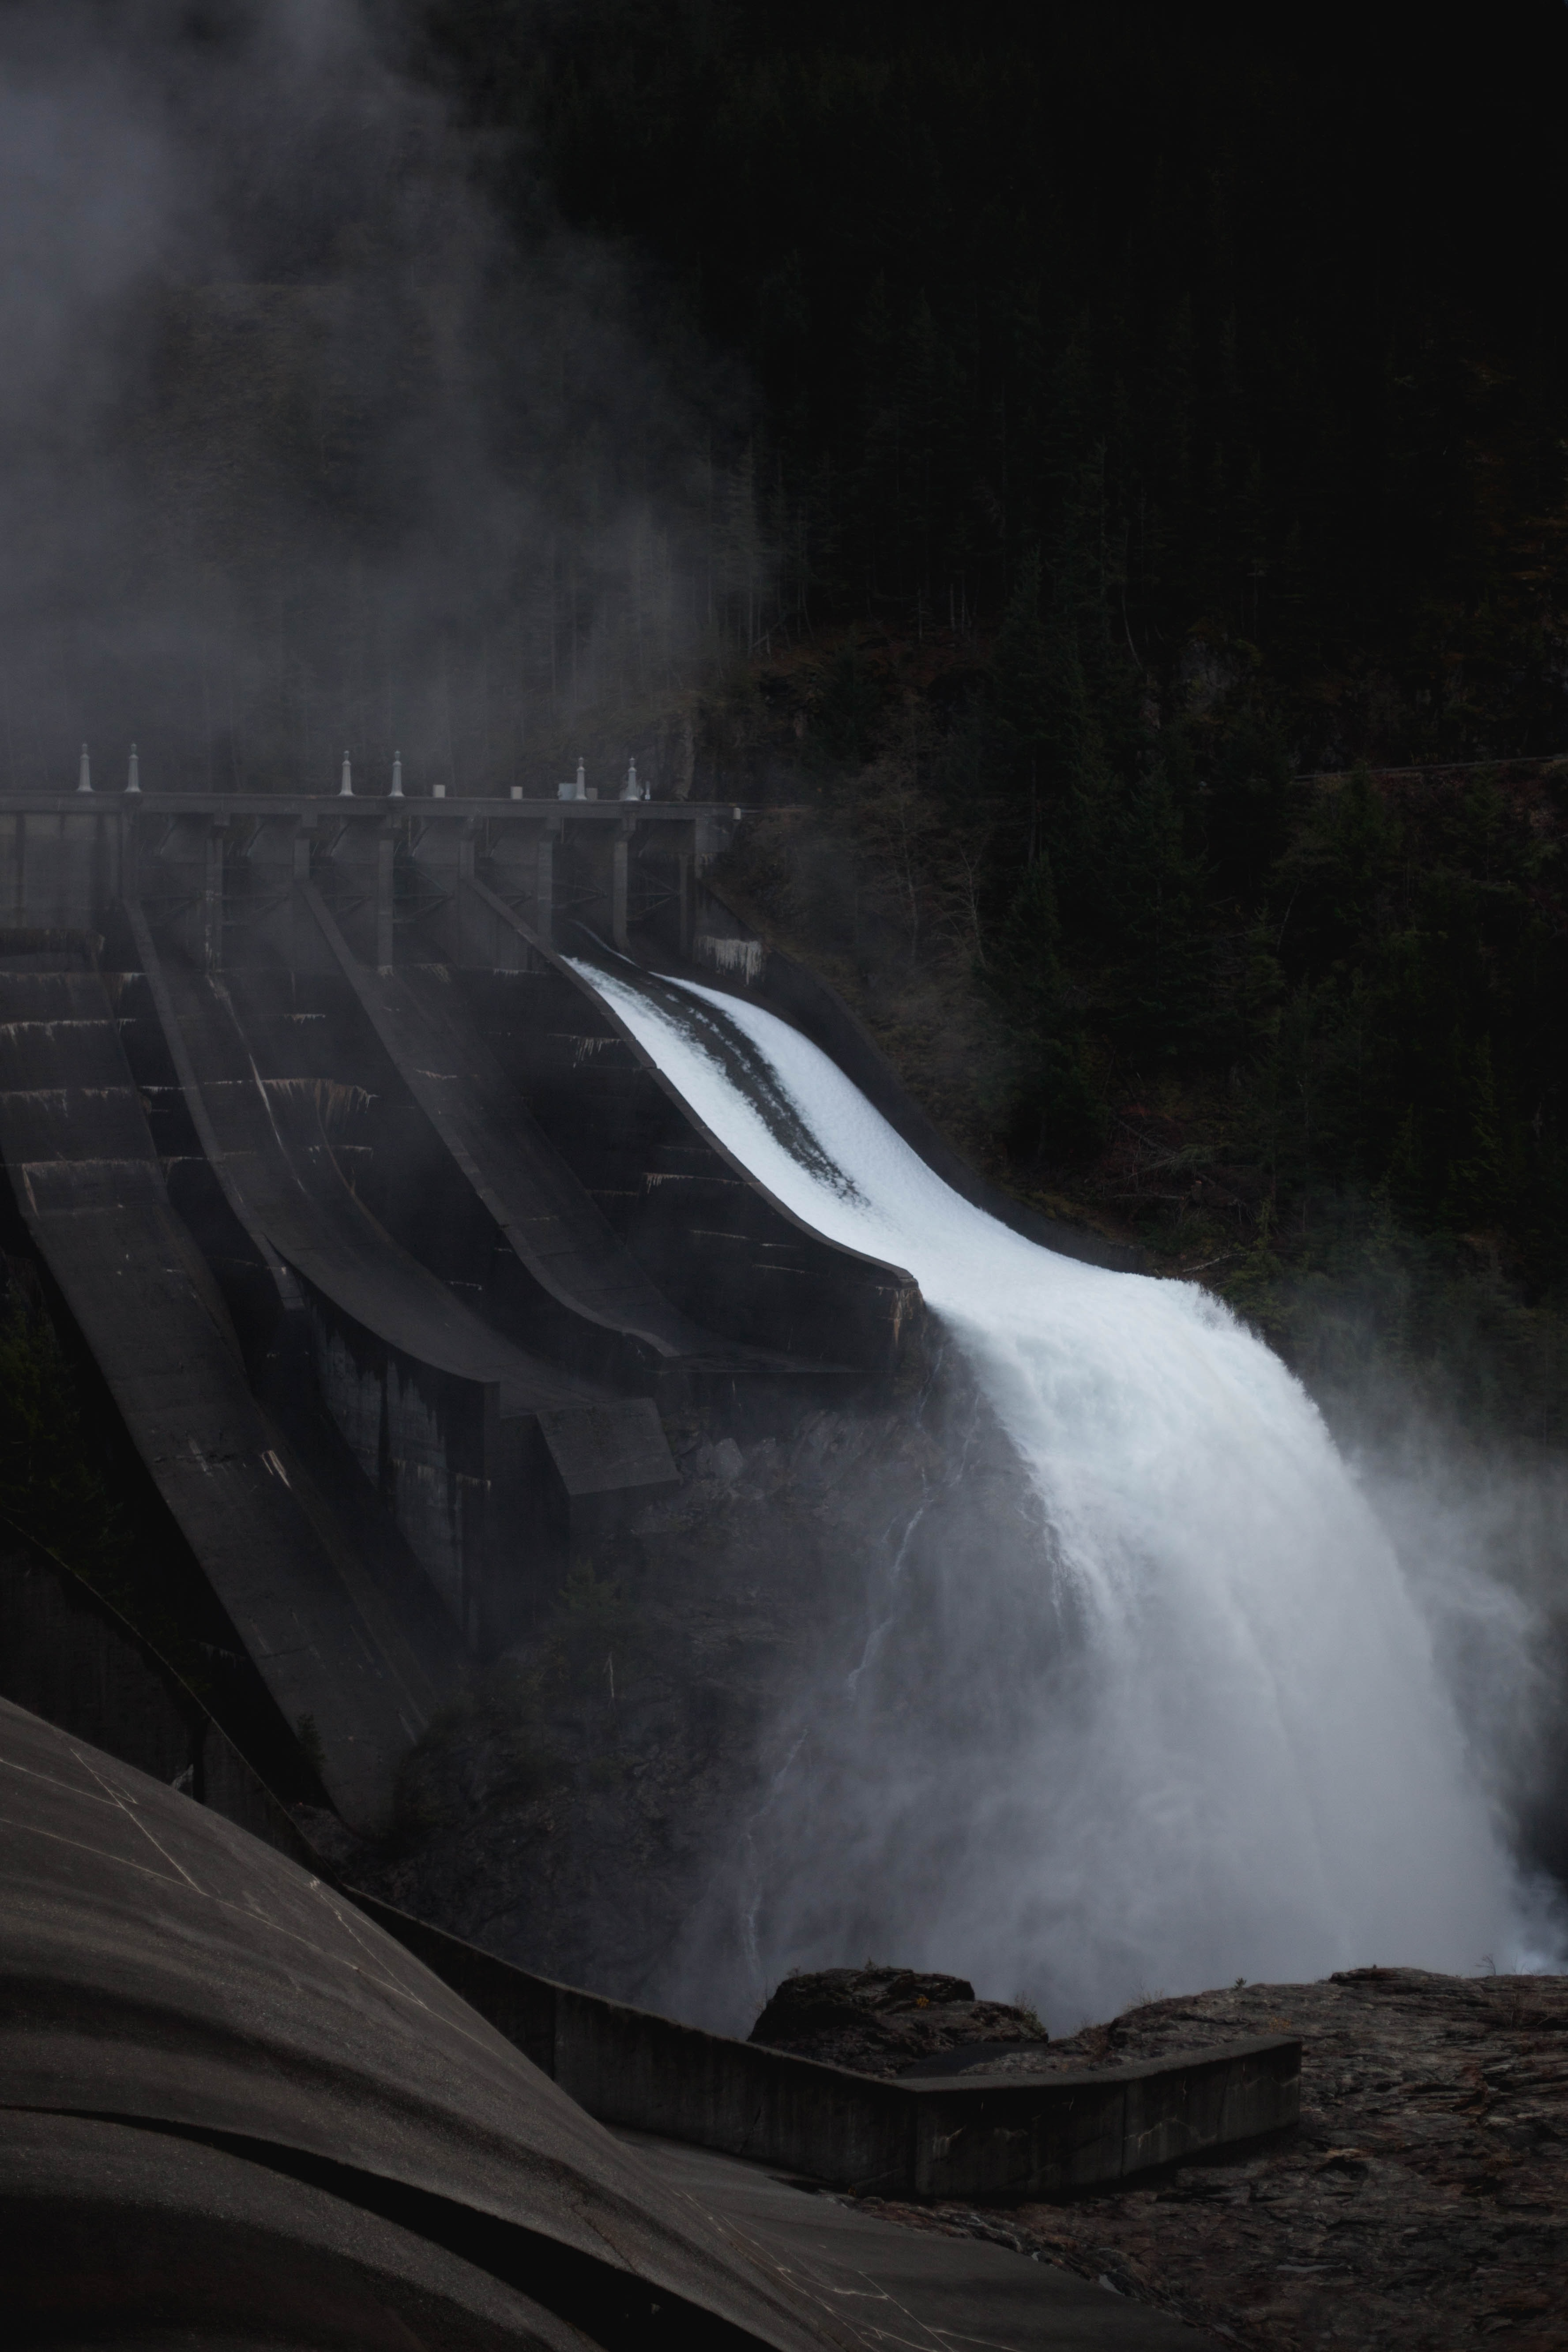 dam pouring water during nighttime